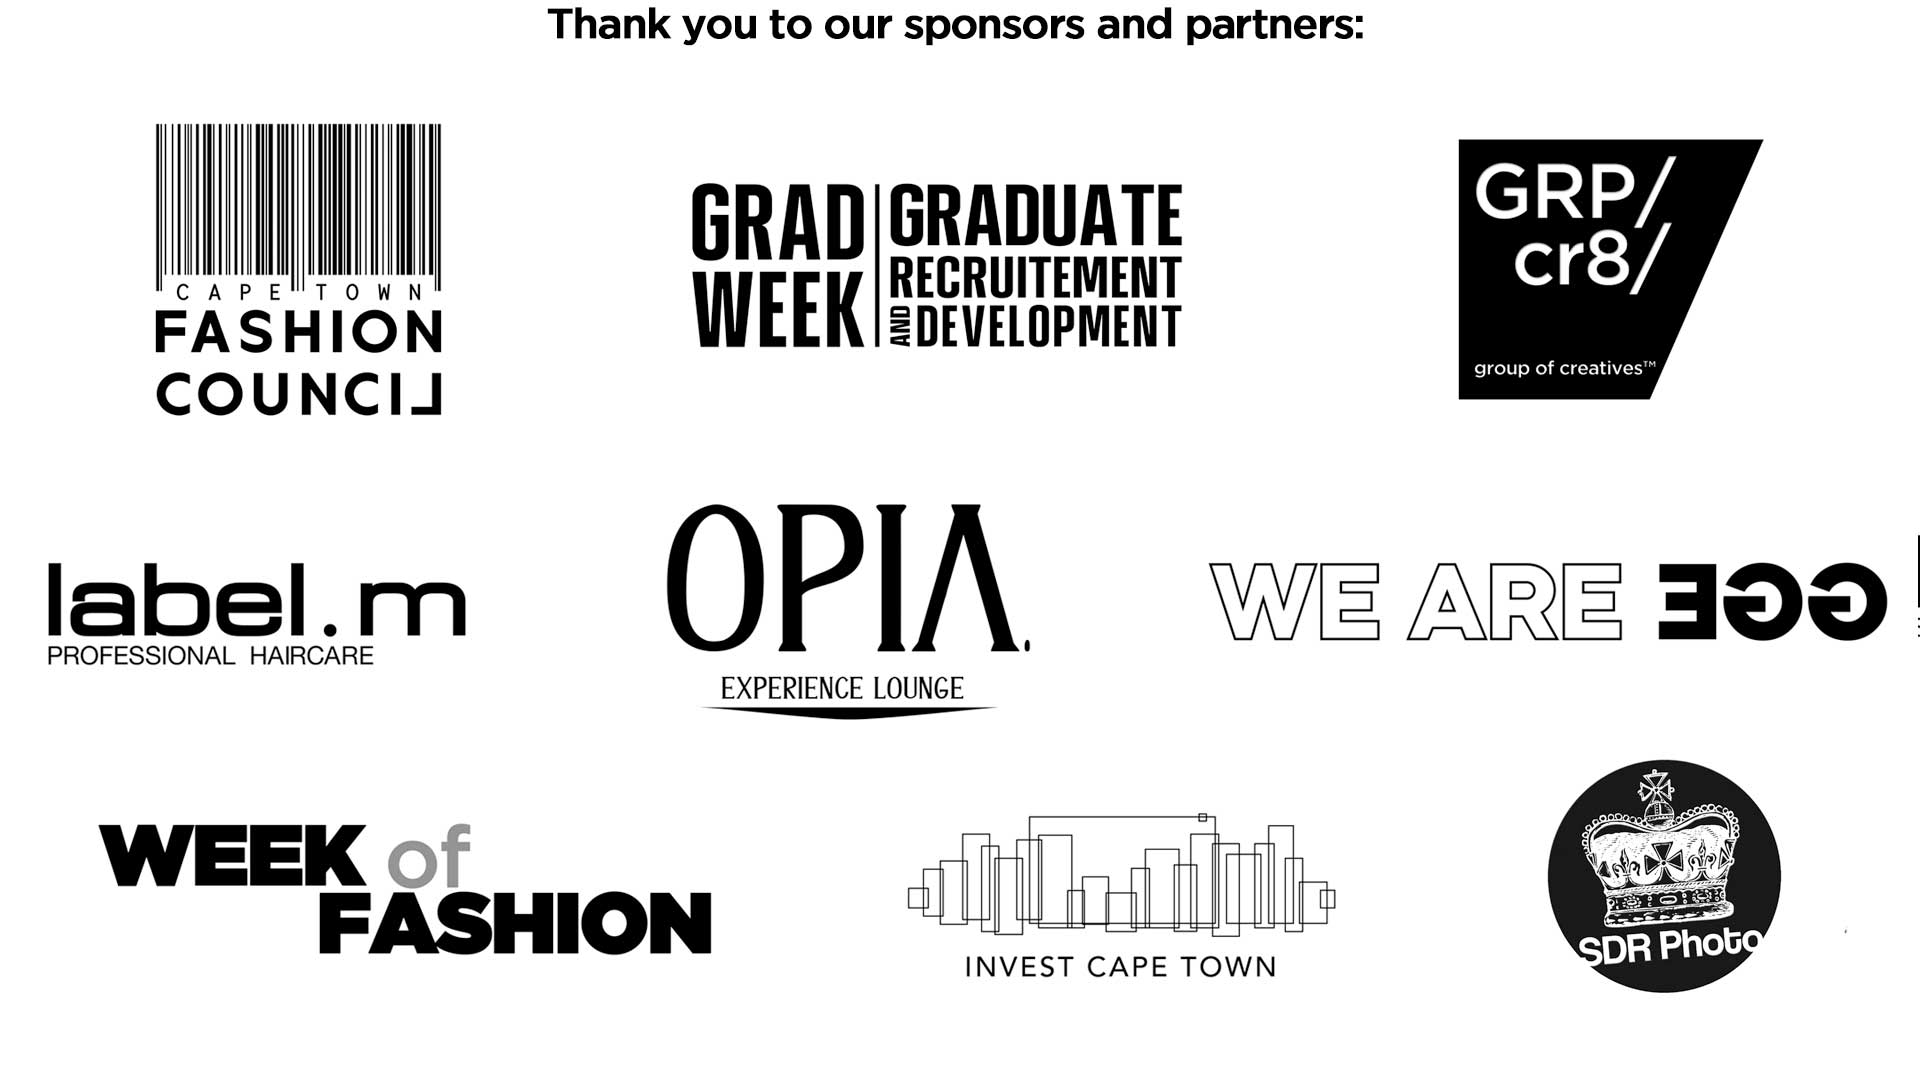 Thank you to the SAMW Sponsors and Partners